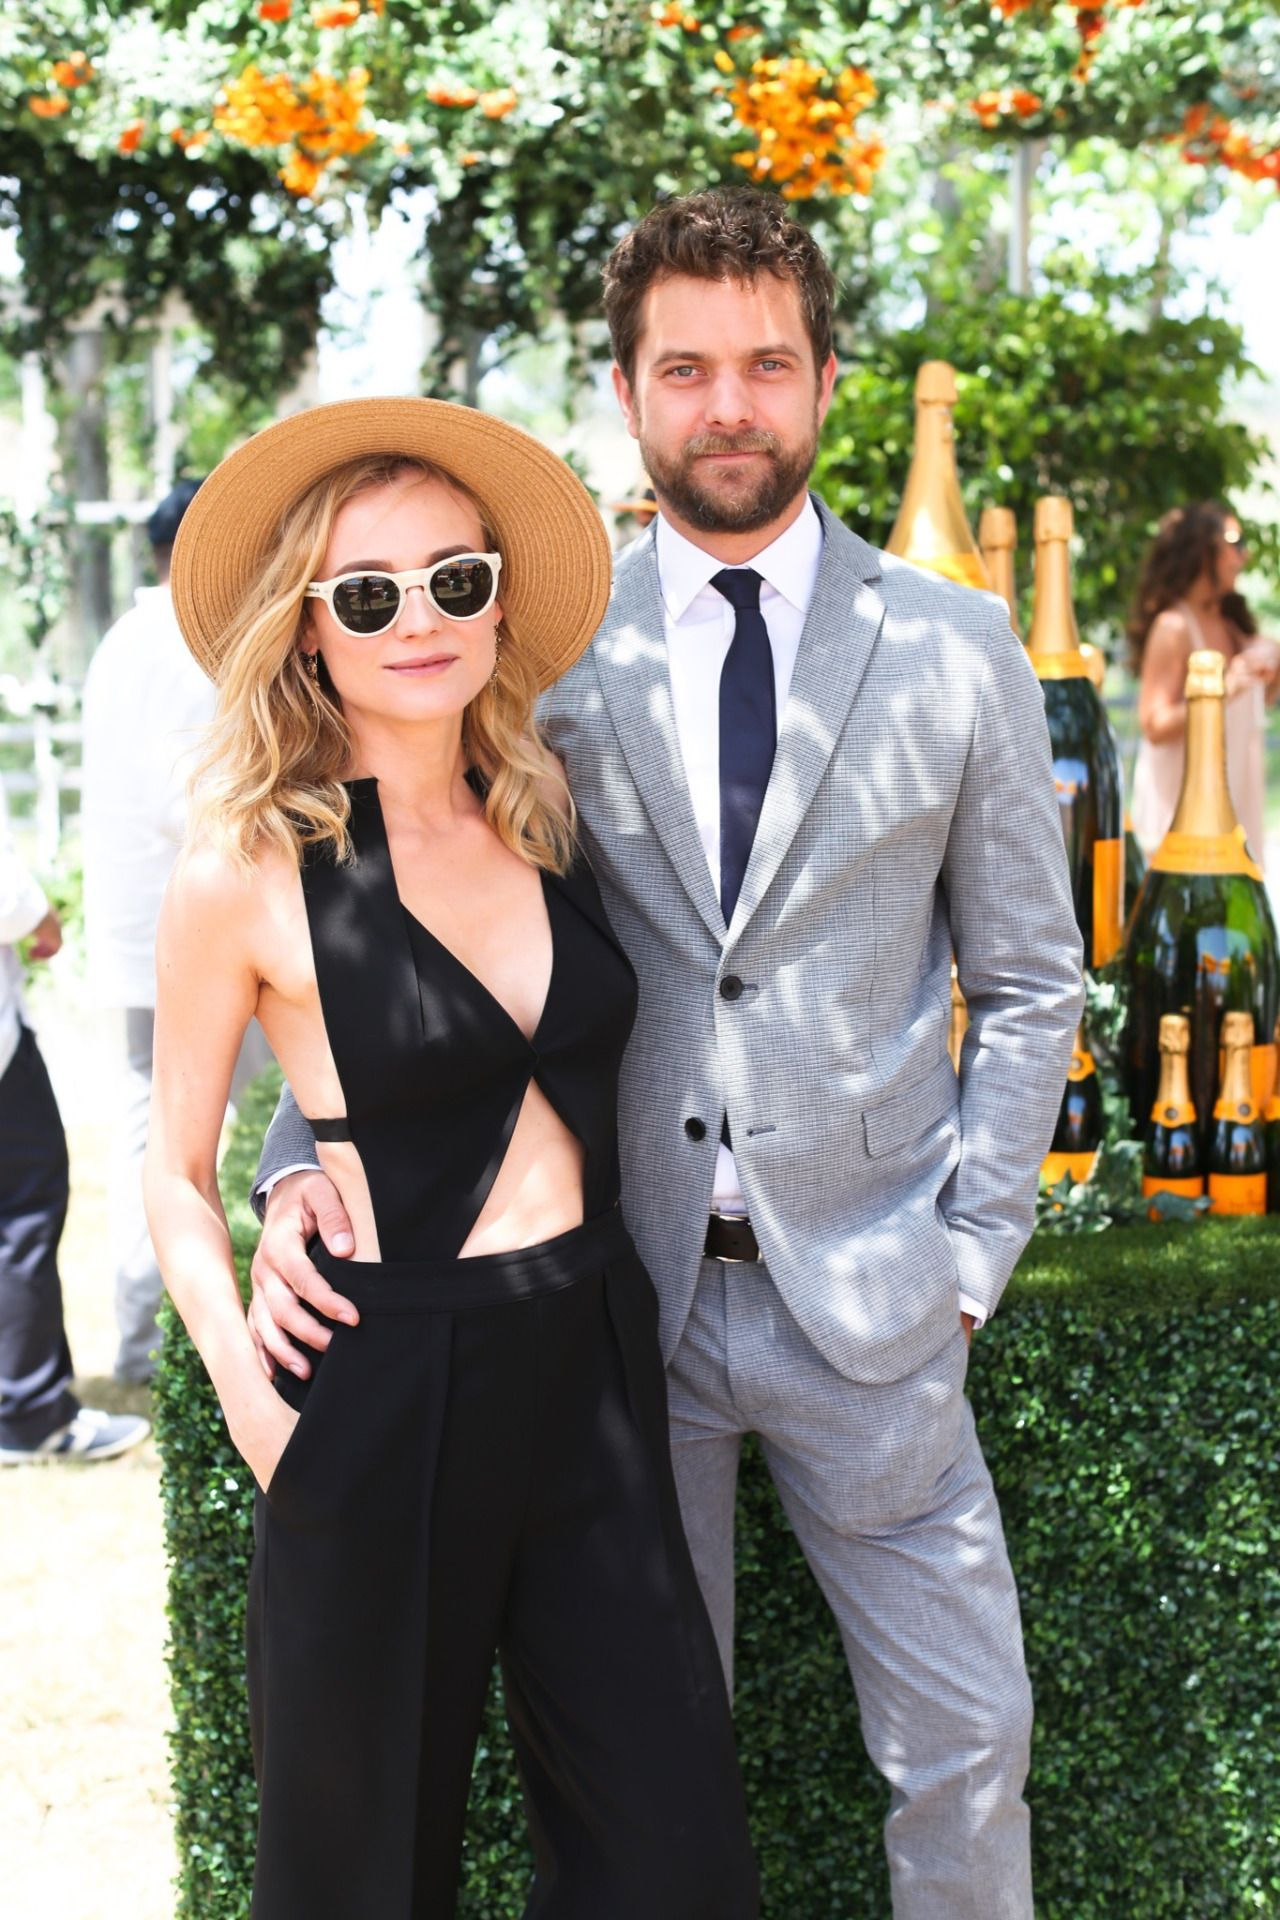 2015 Veuve Clicquot Polo Classic at Liberty State Park on Saturday (May 30) in Jersey City, N.J.  Read more: http://www.justjared.com/2015/05/30/diane-kruger-joshua-jackson-are-perfect-couple-at-veuve-clicquot-polo-classic/#ixzz3gdKRywIj